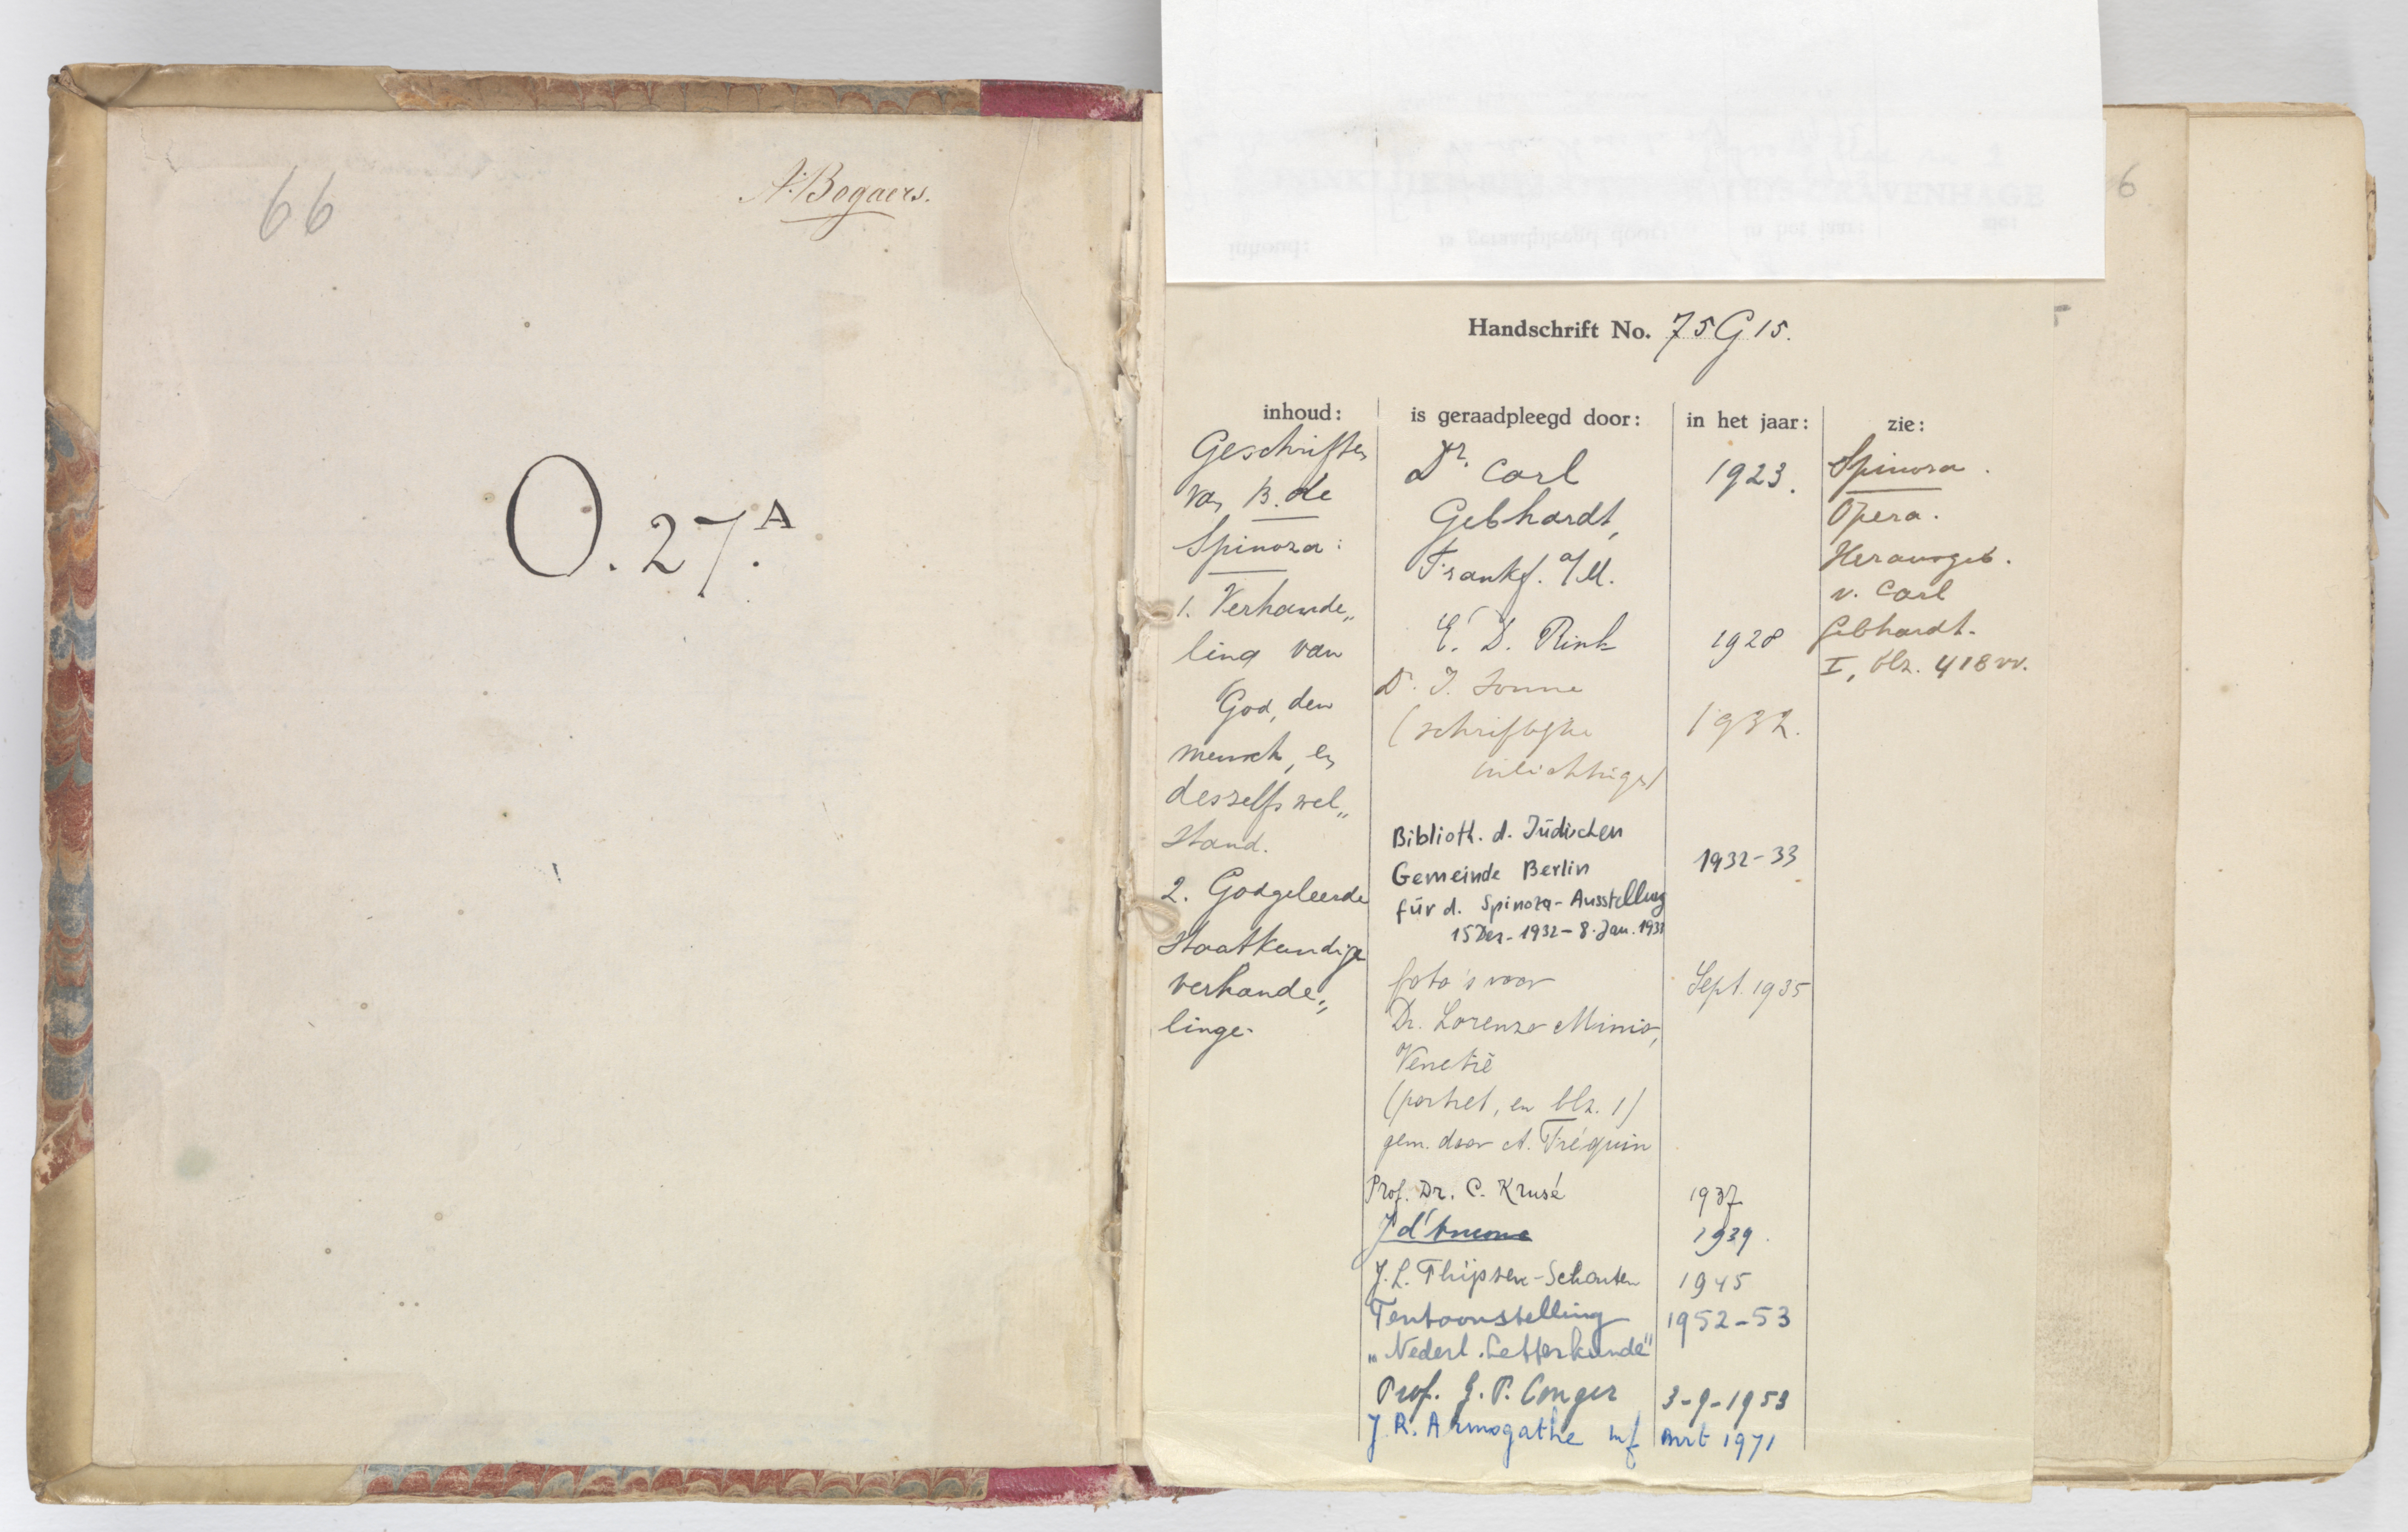 File Check Out Card file:library check-out card (1923-1971) in spinozas korte